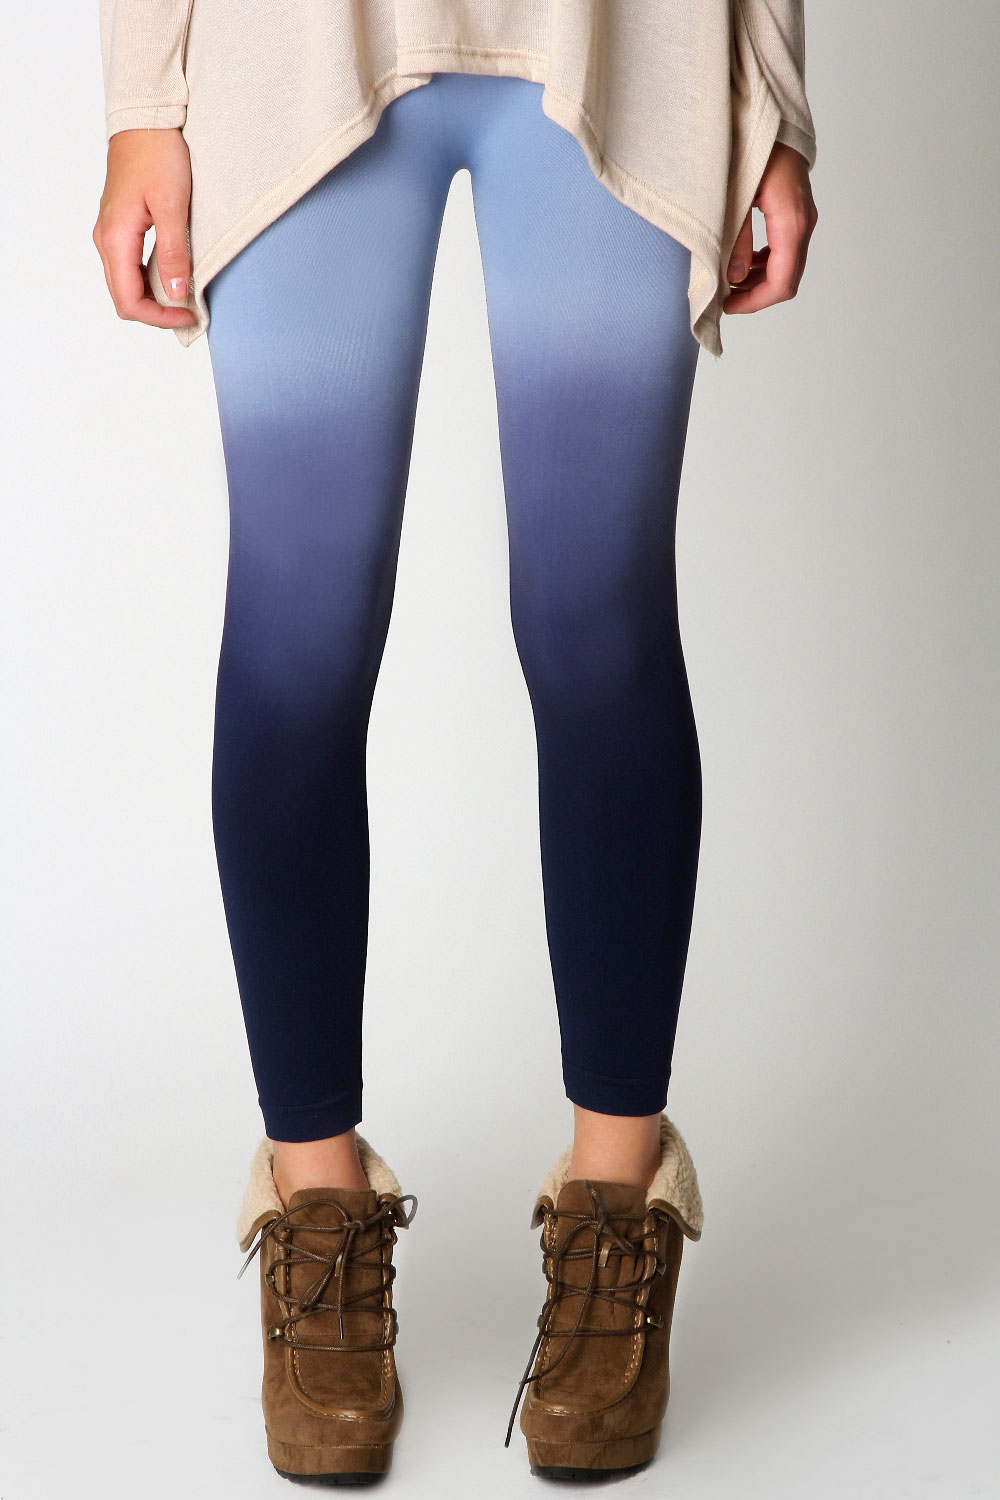 Boohoo-Printed-On-Trend-Leggings-3-Styles-Available